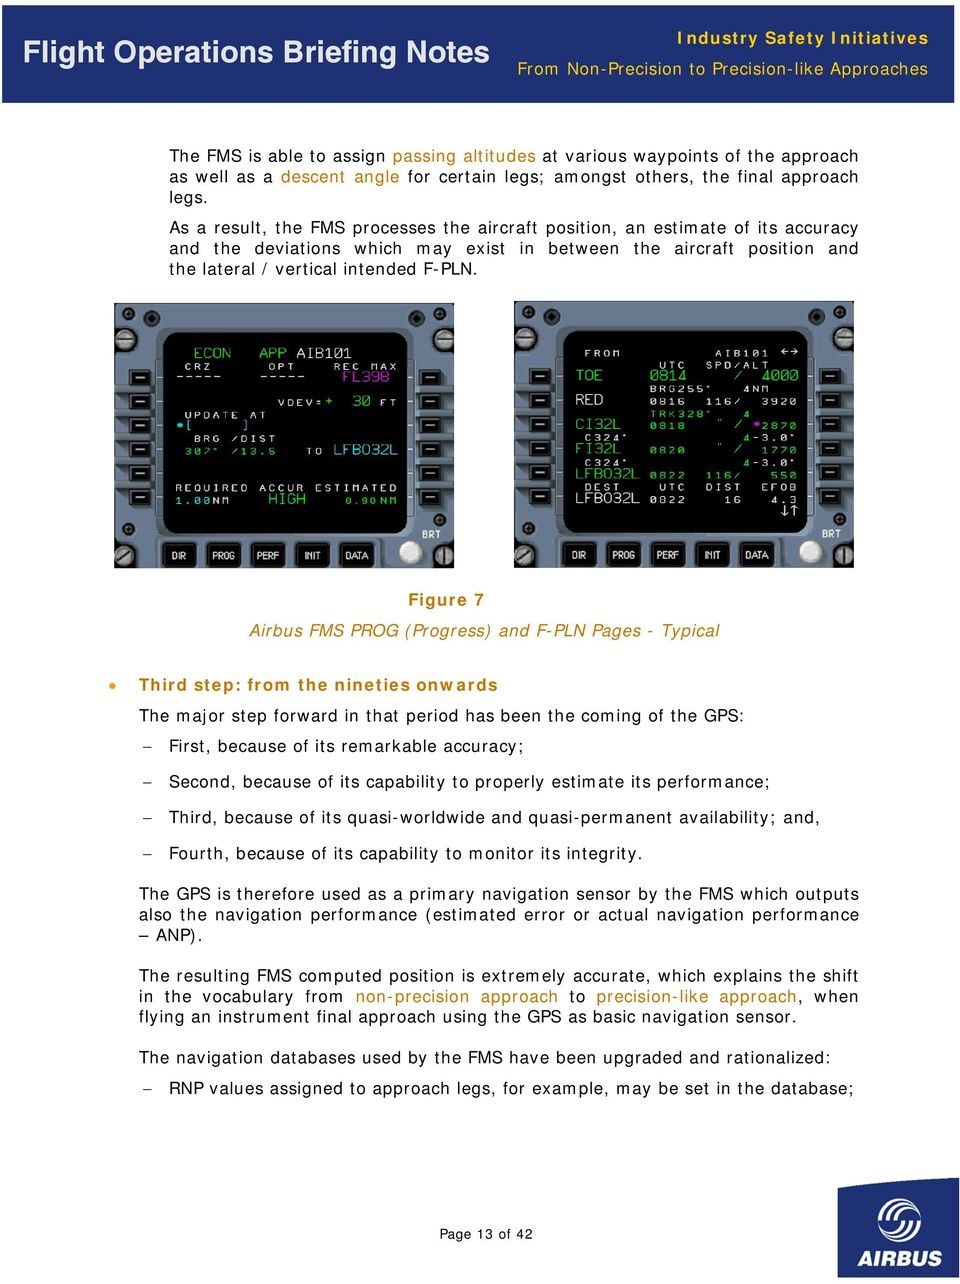 Figure 7 Airbus FMS PROG (Progress) and F-PLN Pages - Typical Third step: from the nineties onwards The major step forward in that period has been the coming of the GPS: First, because of its